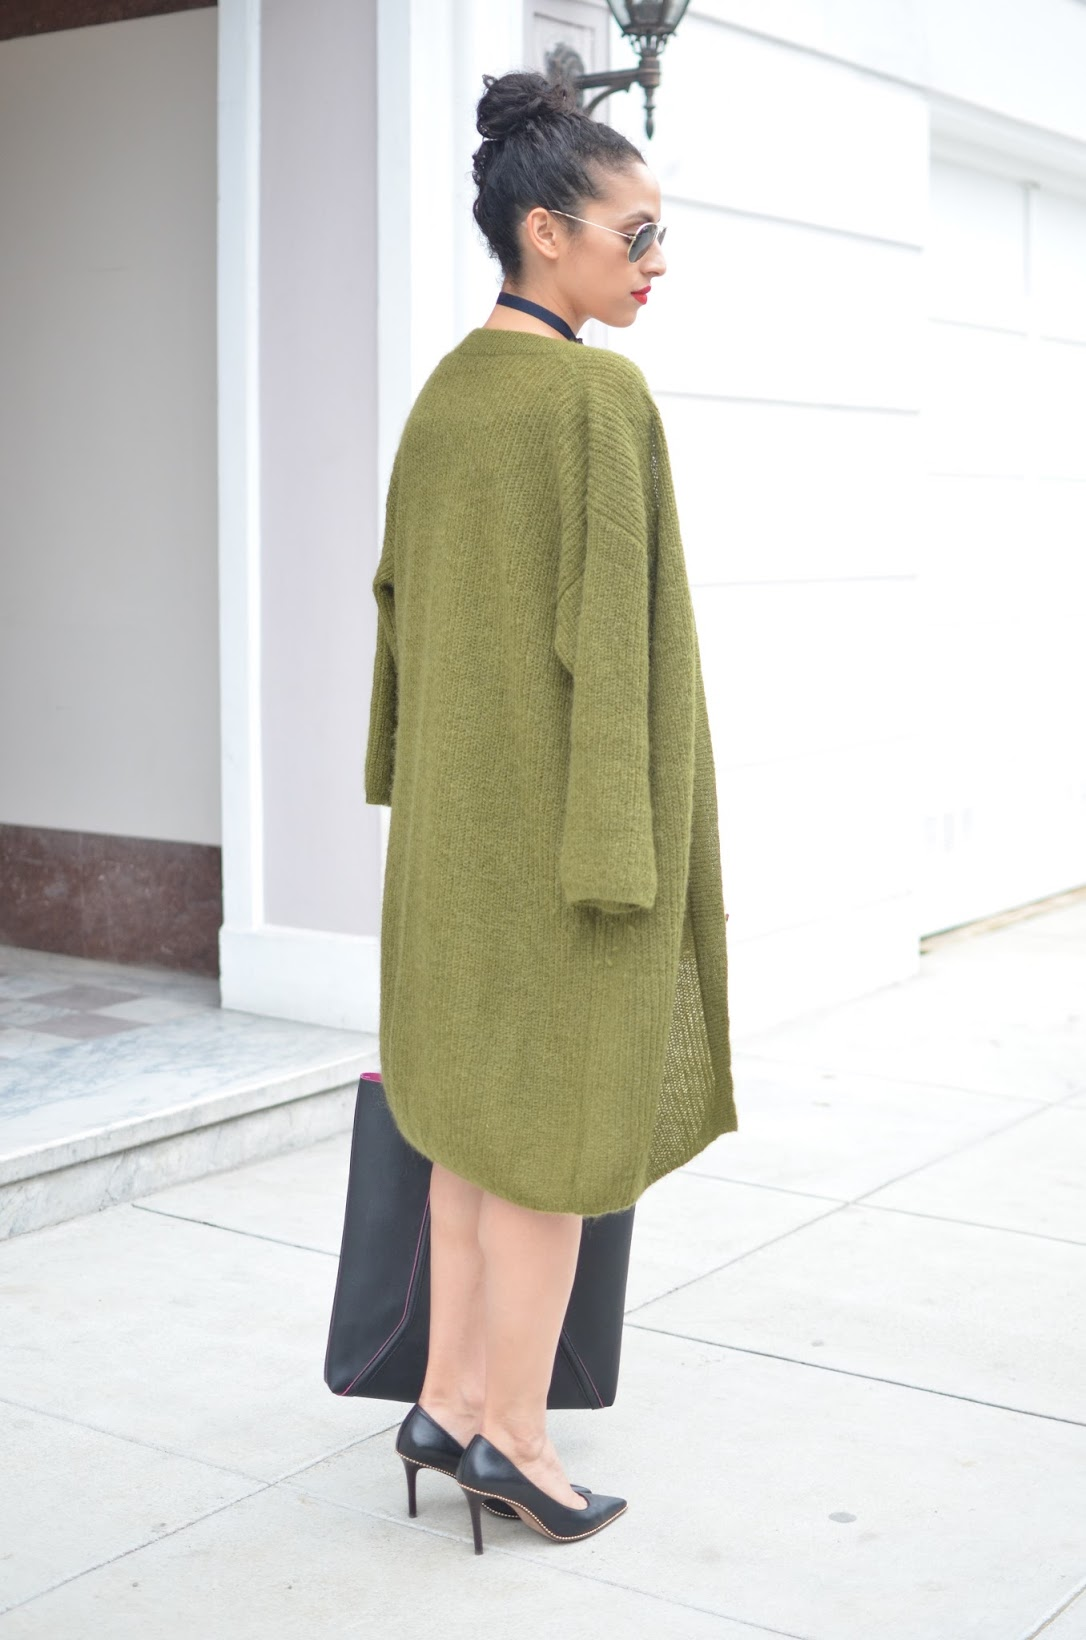 olive green cardigan, Massimo Dutti cardigan, ribbon choker, Coach pumps, black leather tote bag, zip pencil skirt, off-the-shoulder sweater, off-the-shoulder ribbed sweater